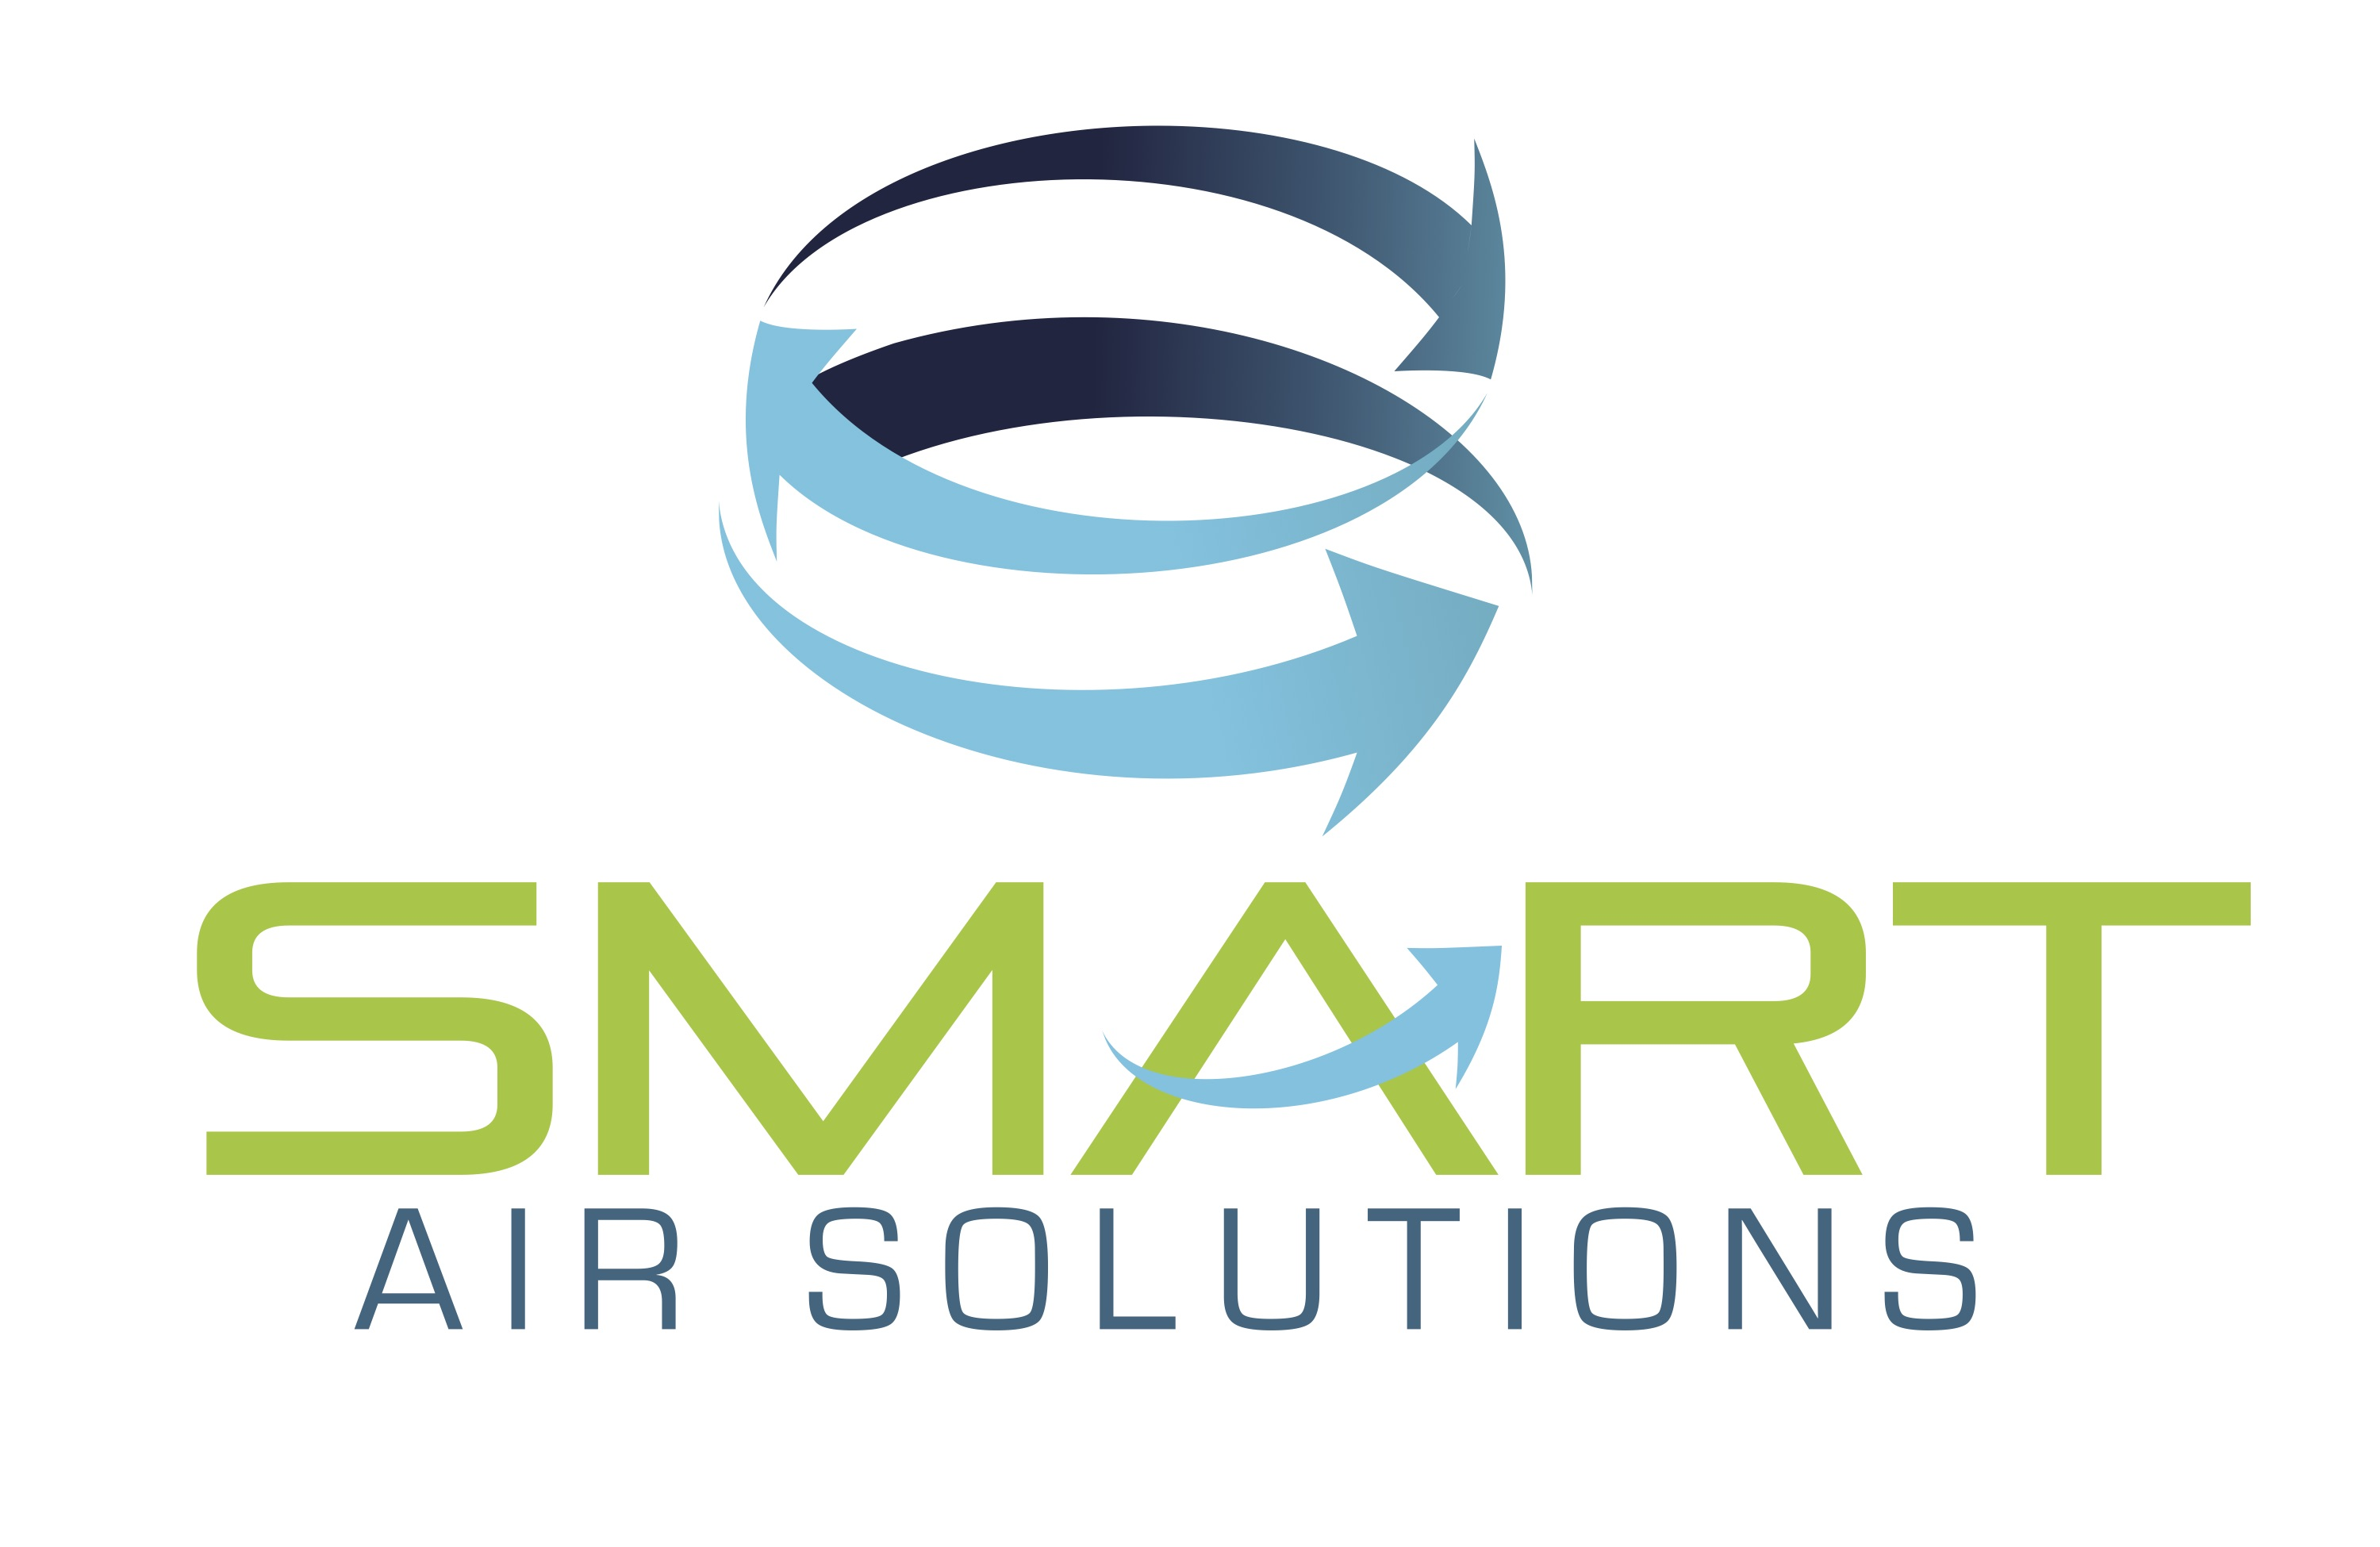 Smart Air Solutions announces that they are launching their U.S. Aerification Services & Products in Miami, FL.